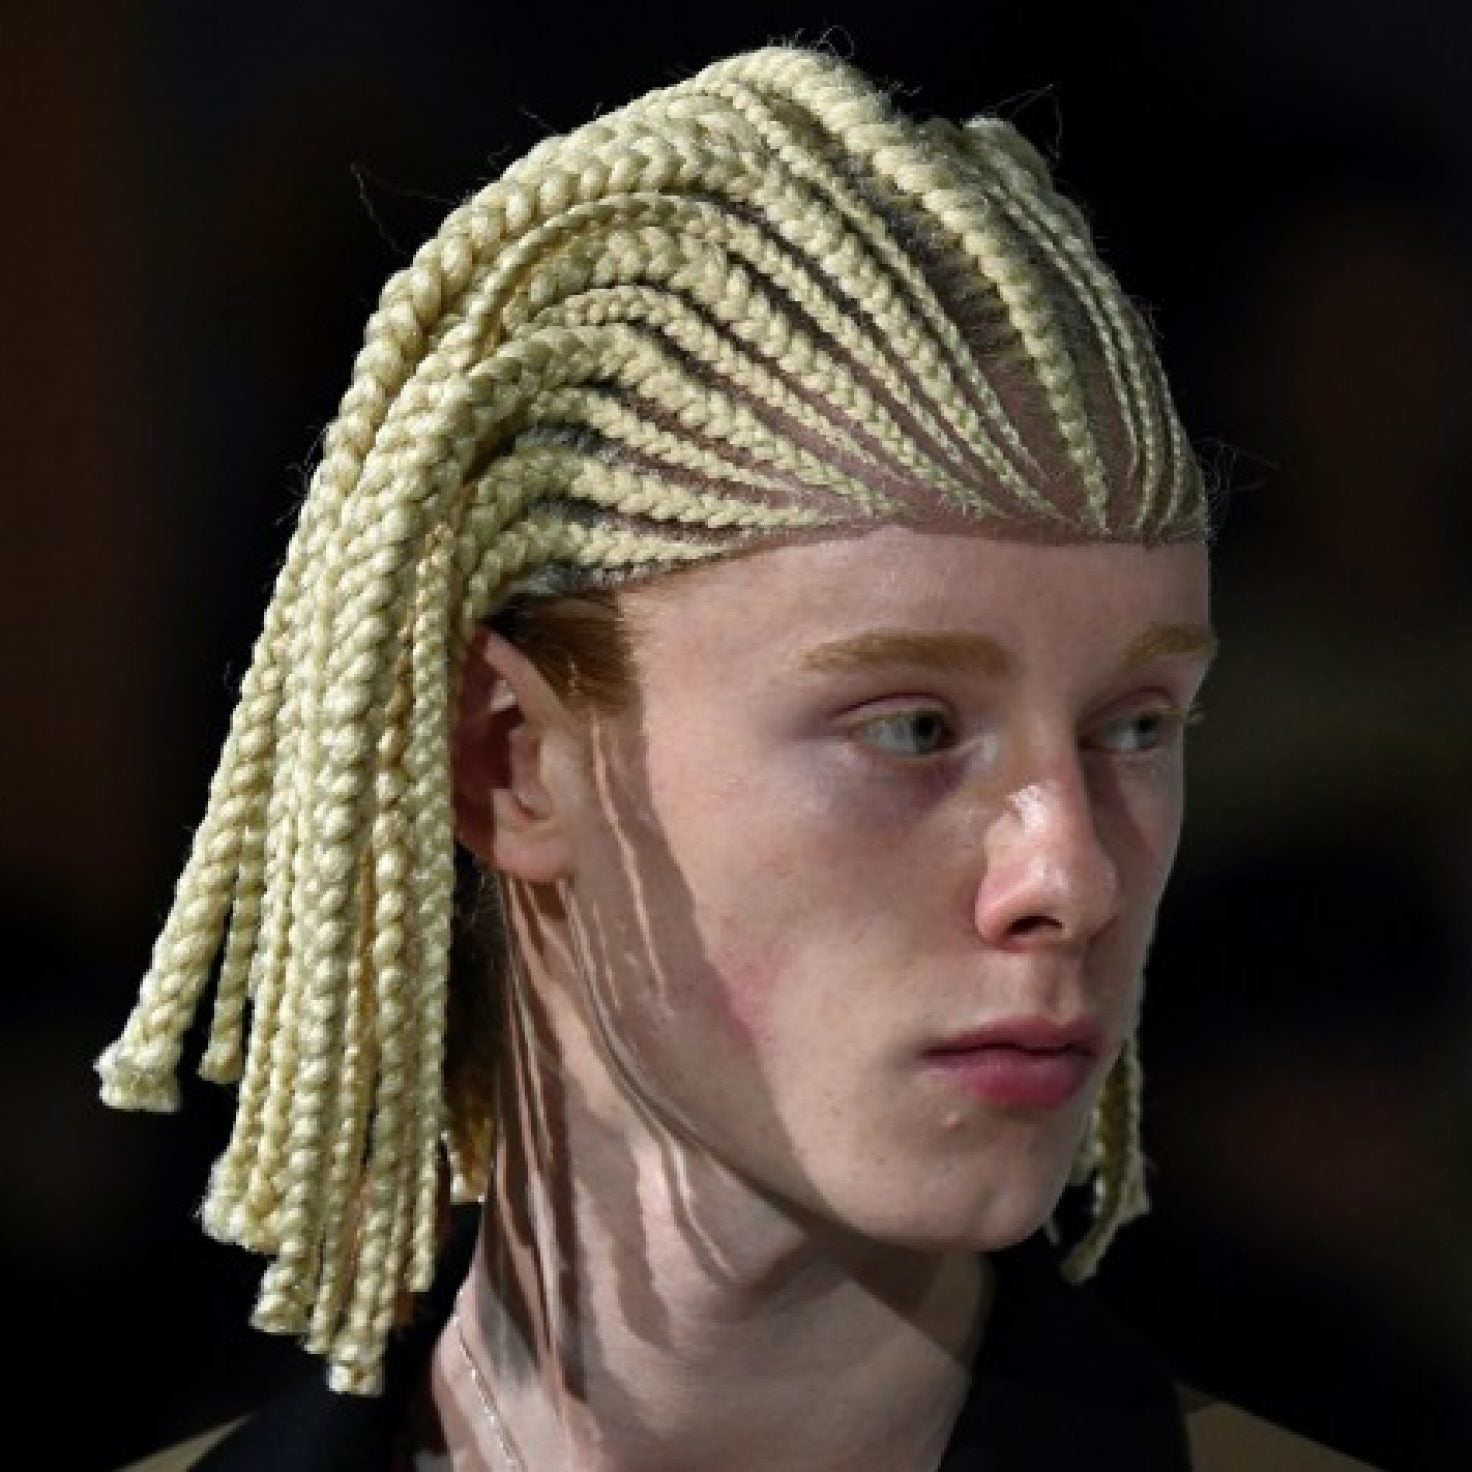 The Wigs At Comme des Garçons Weren't Appropriation, But They're Still Problematic